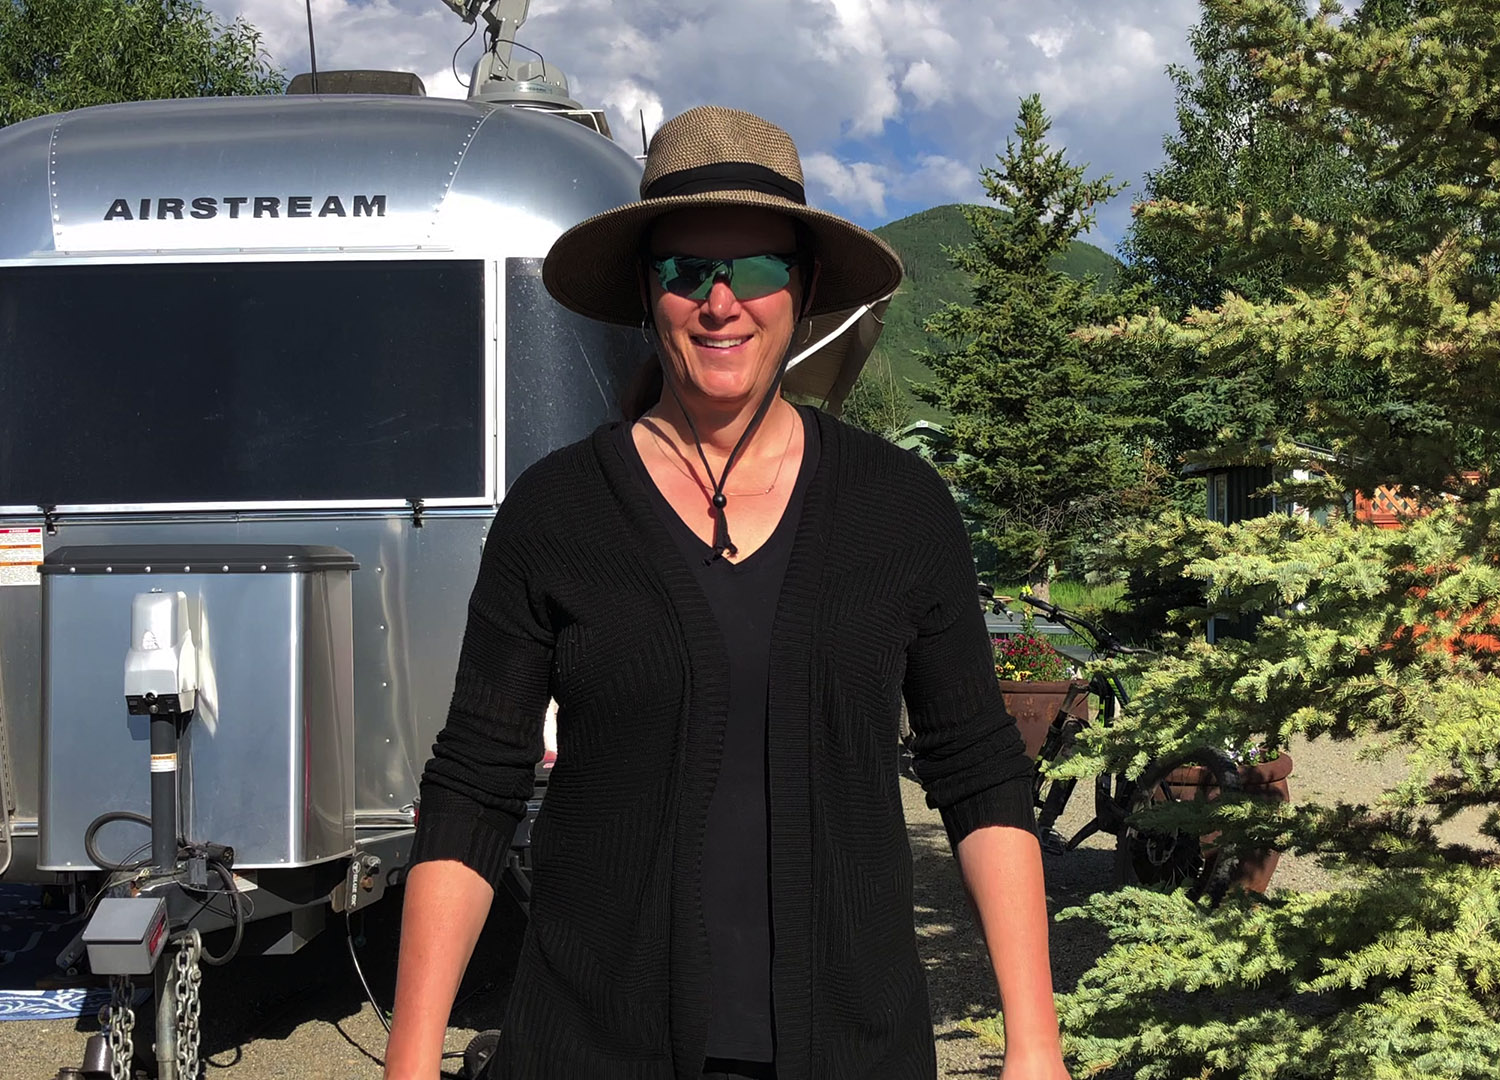 Airstream Customer Council Member Emily Lewis